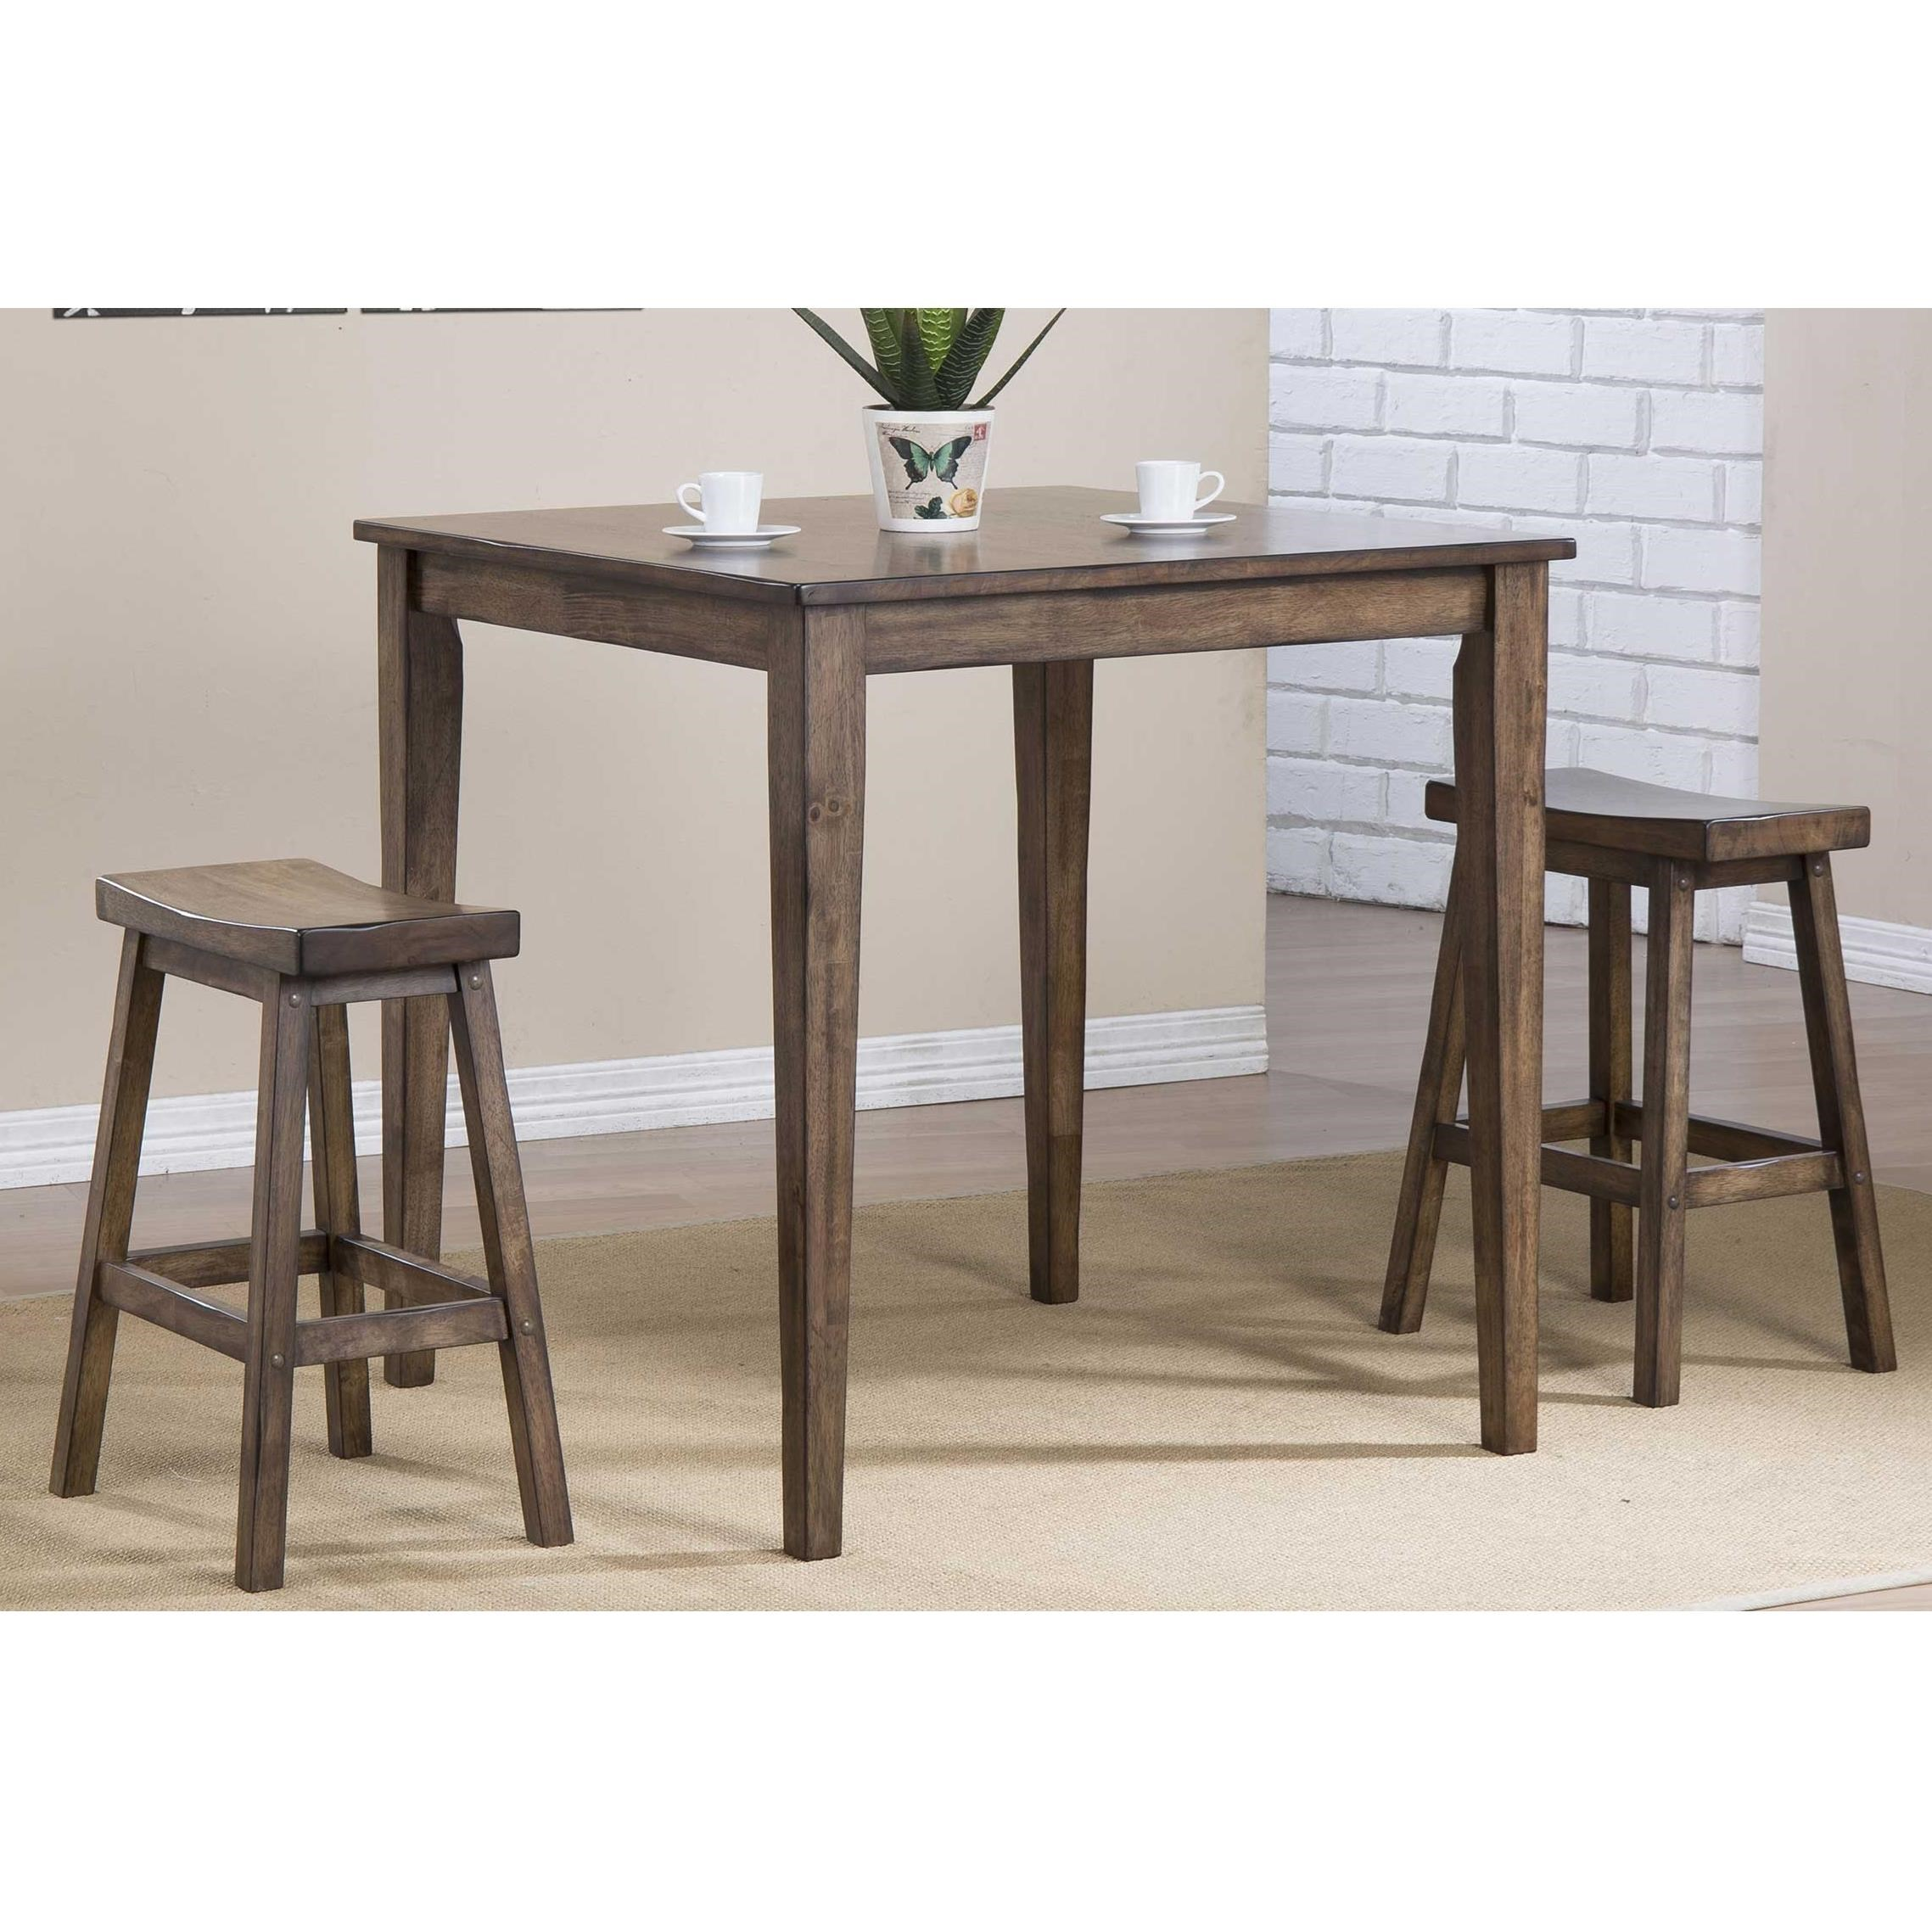 Winners Only Carmel 3 Piece Counter Height Dining Set   Item Number:  DCT33636R+2x5724R